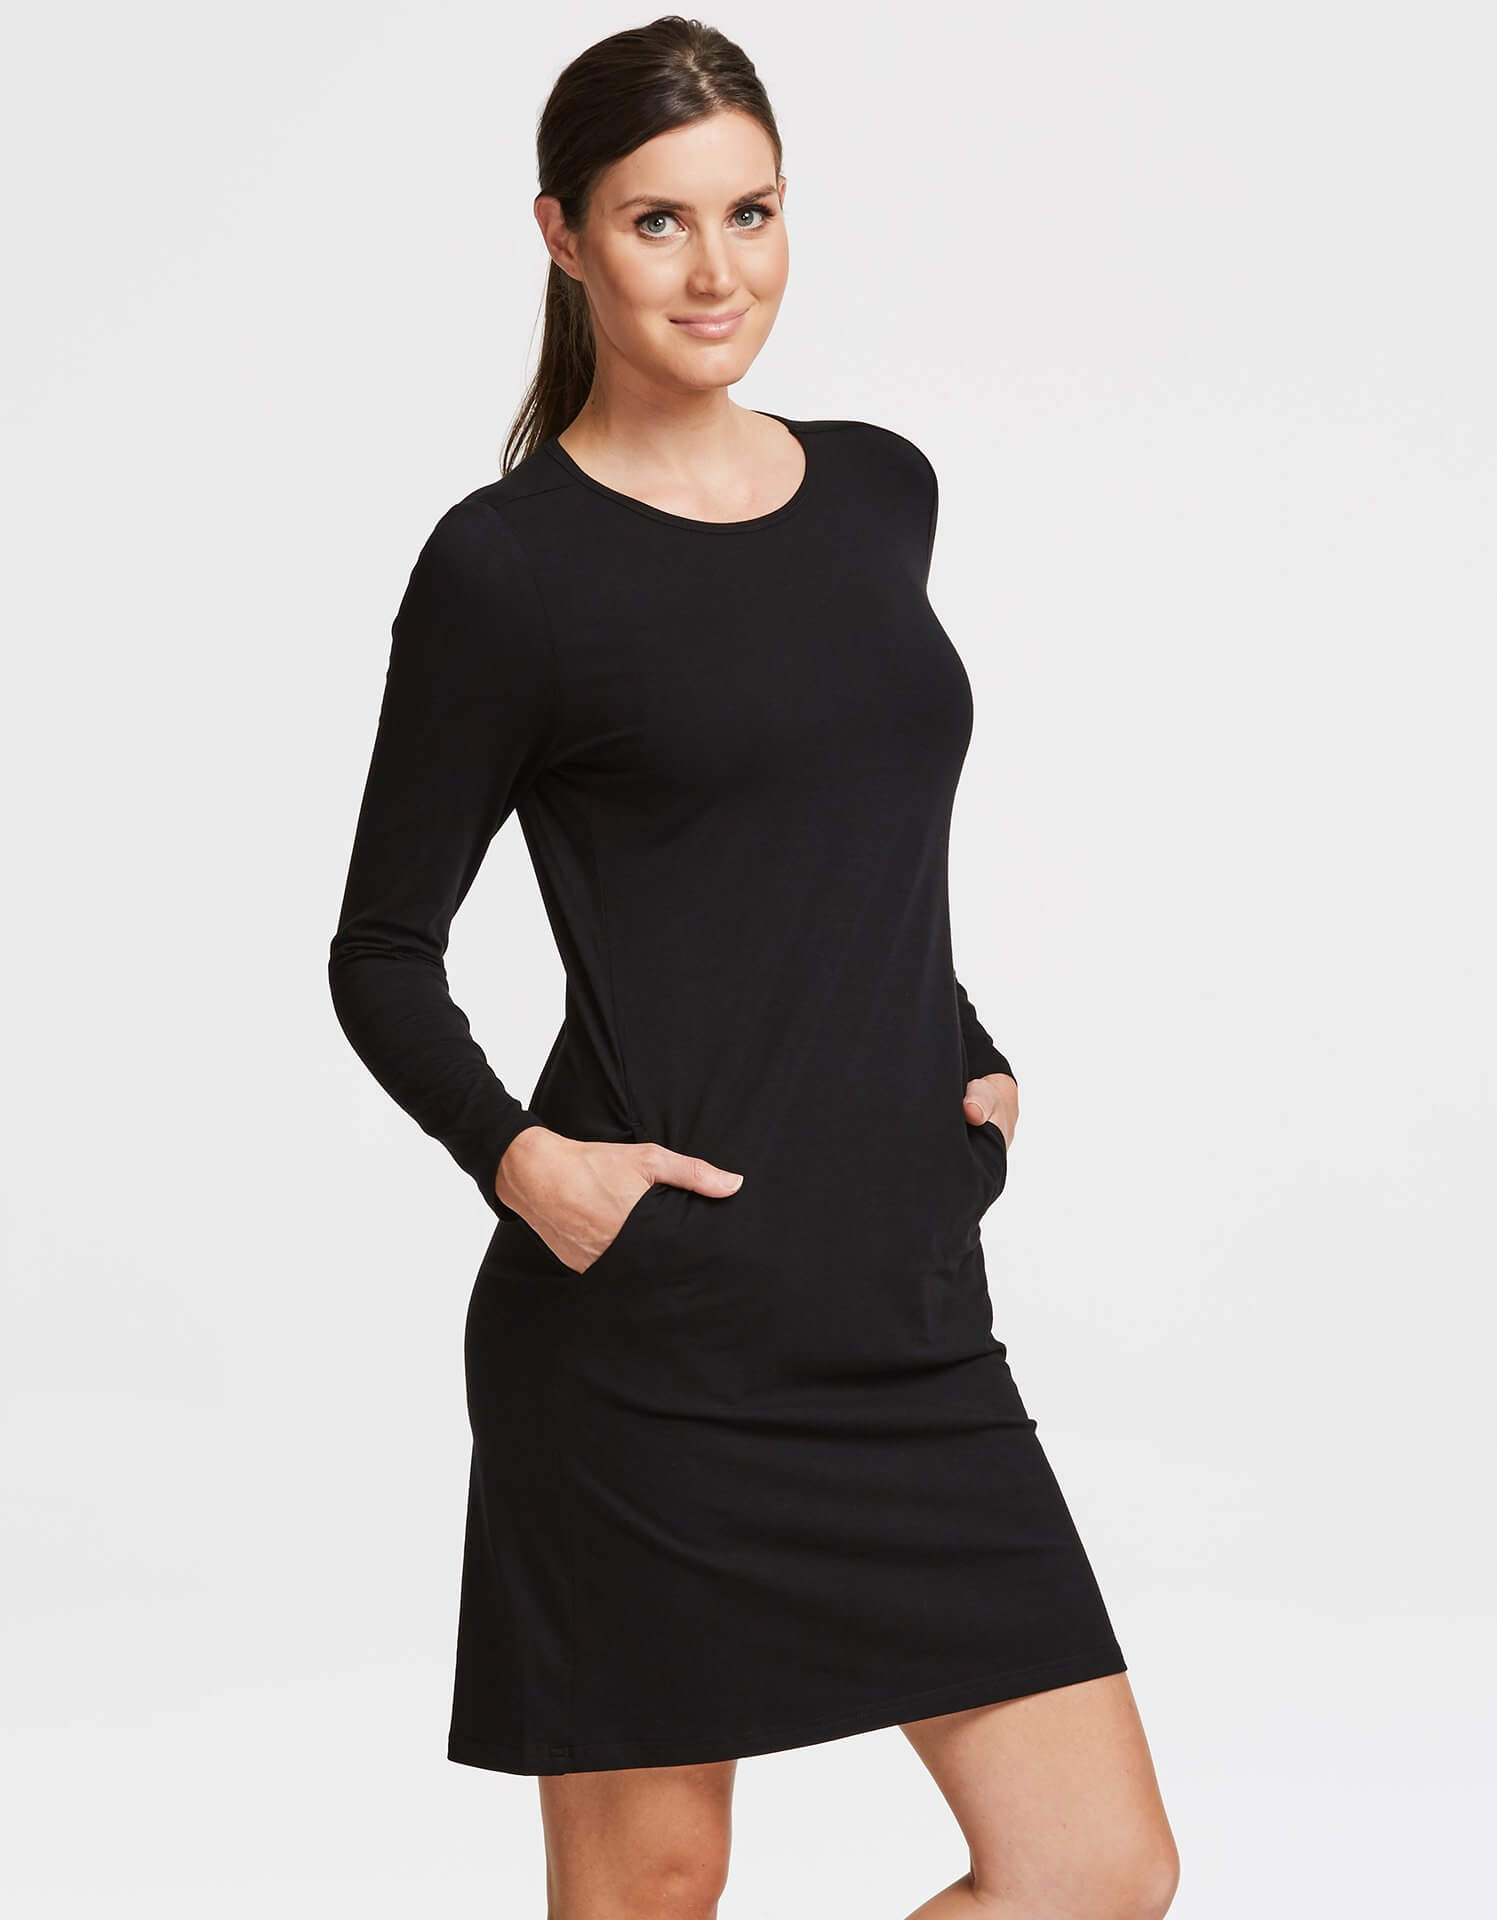 2ff681b2460 Solbari UPF 50+ Sun Protection Black Long Sleeve T-Shirt Dress Sensitive  Collection for